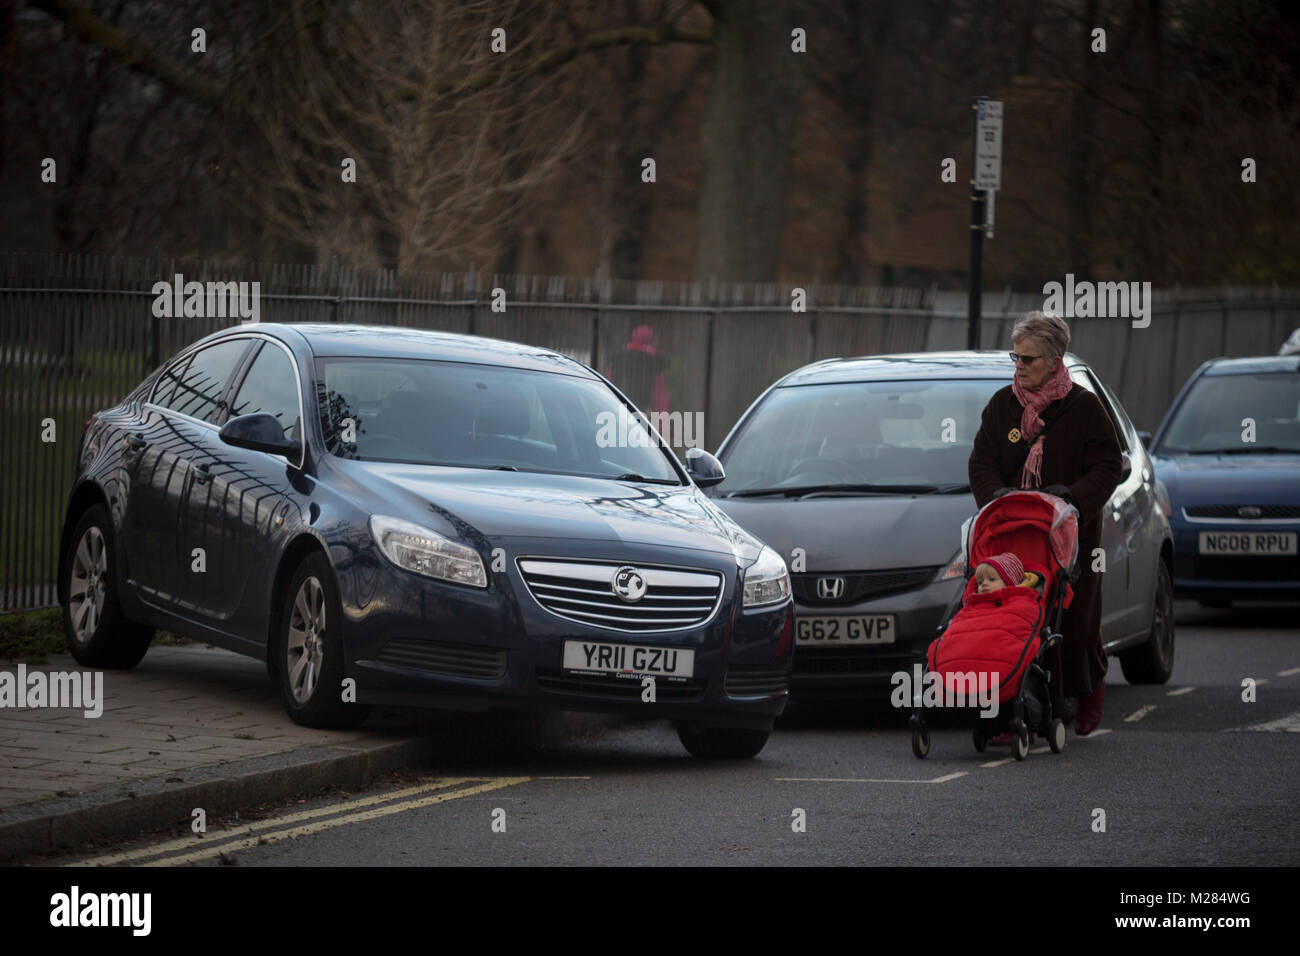 An elderly lady with a child's buggy walks in the road past a mysteriously abandoned Vauxhall car resting at - Stock Image